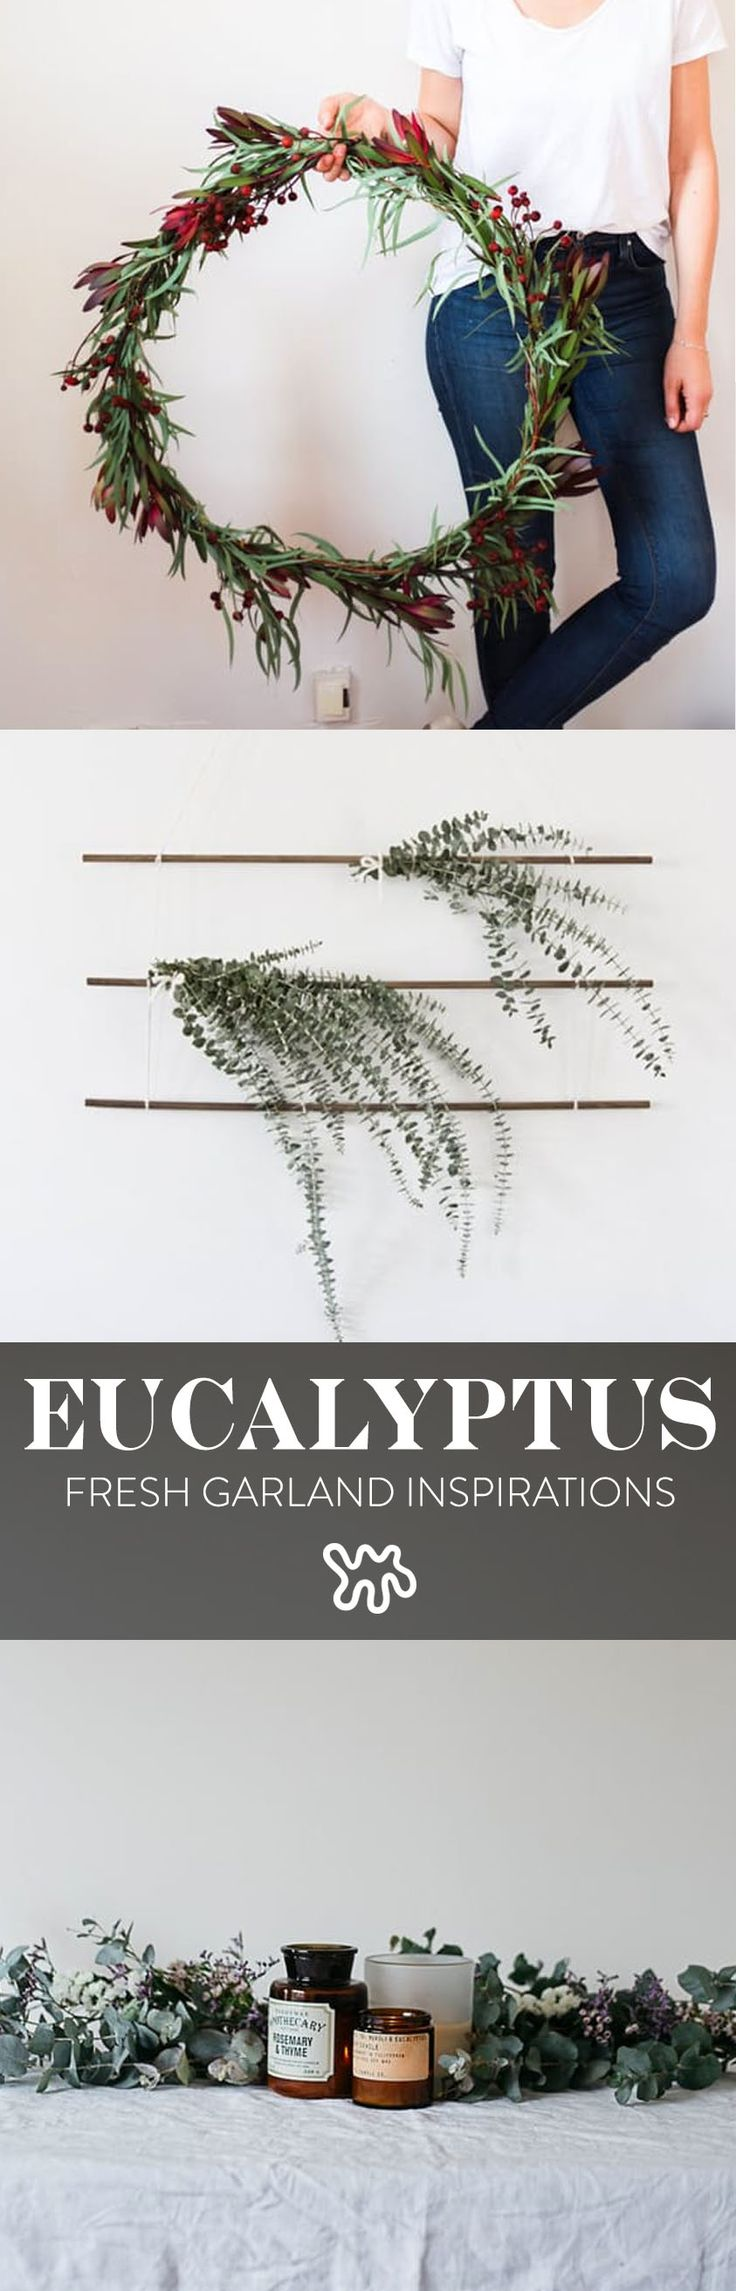 Eucalyptus is understated and subtle with its varying shades of green, and will keep you in tune with what's real and true during these hectic and busy times. If you don't want to go whole hog with holiday decorations, choose one simple decorating idea instead, like this pretty garland